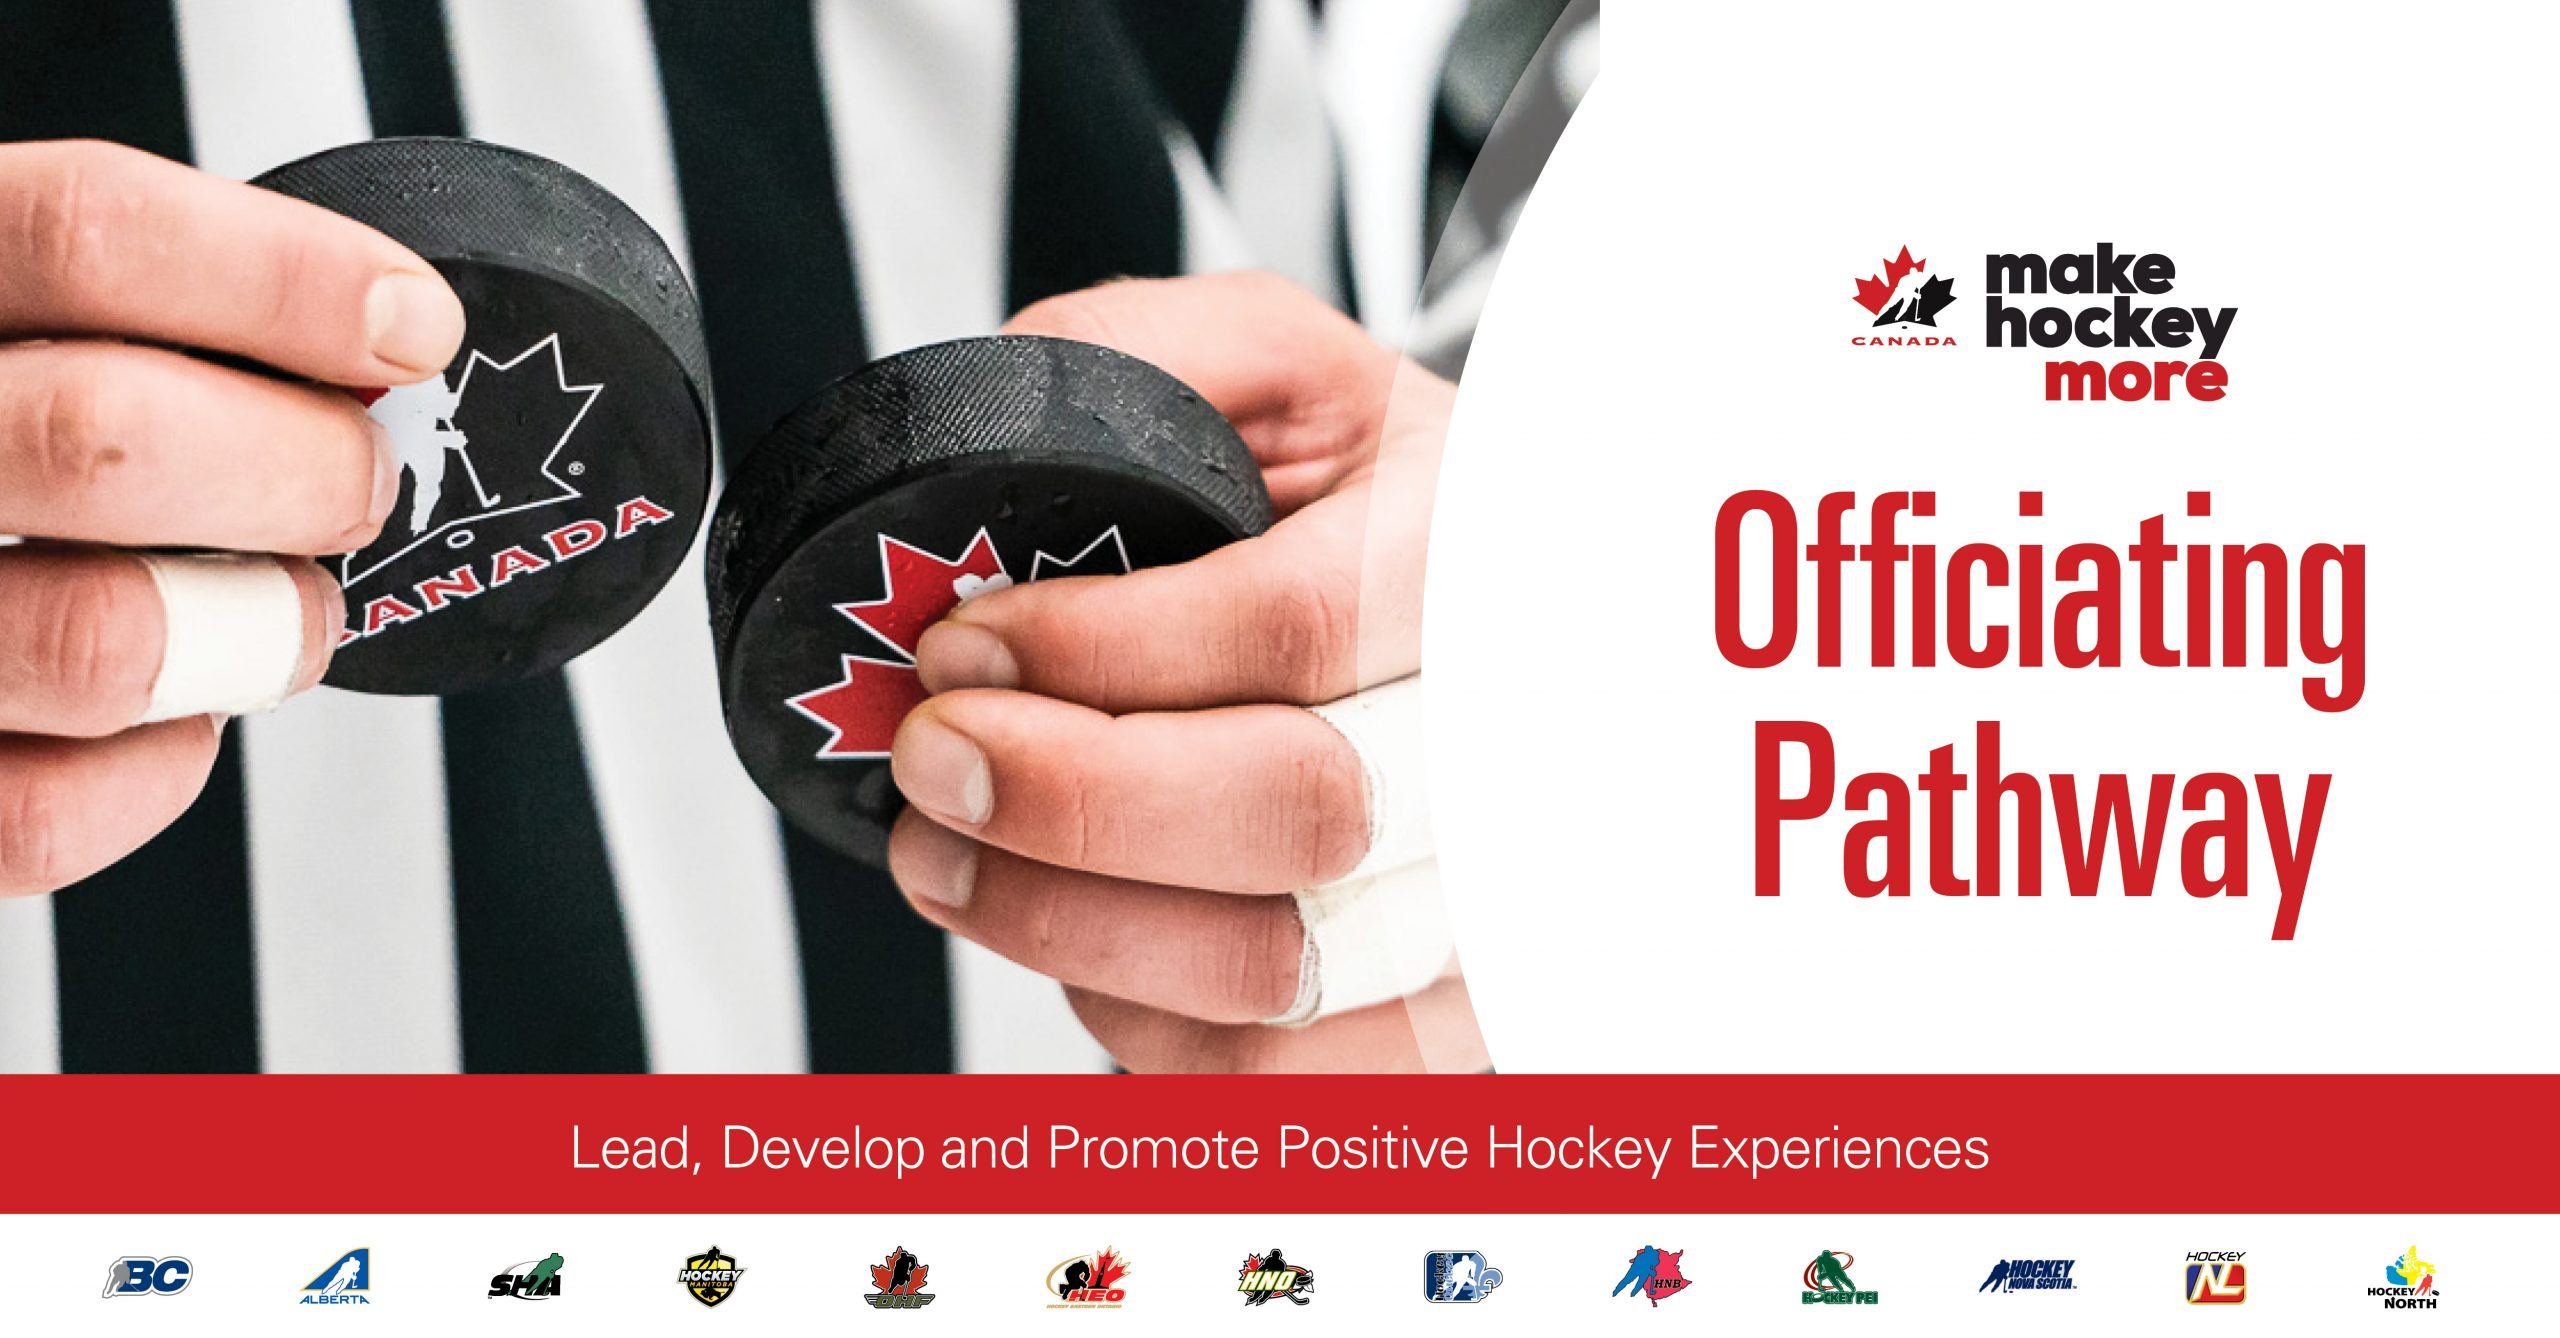 HOCKEY CANADA ANNOUNCES NEW OFFICIATING PATHWAY